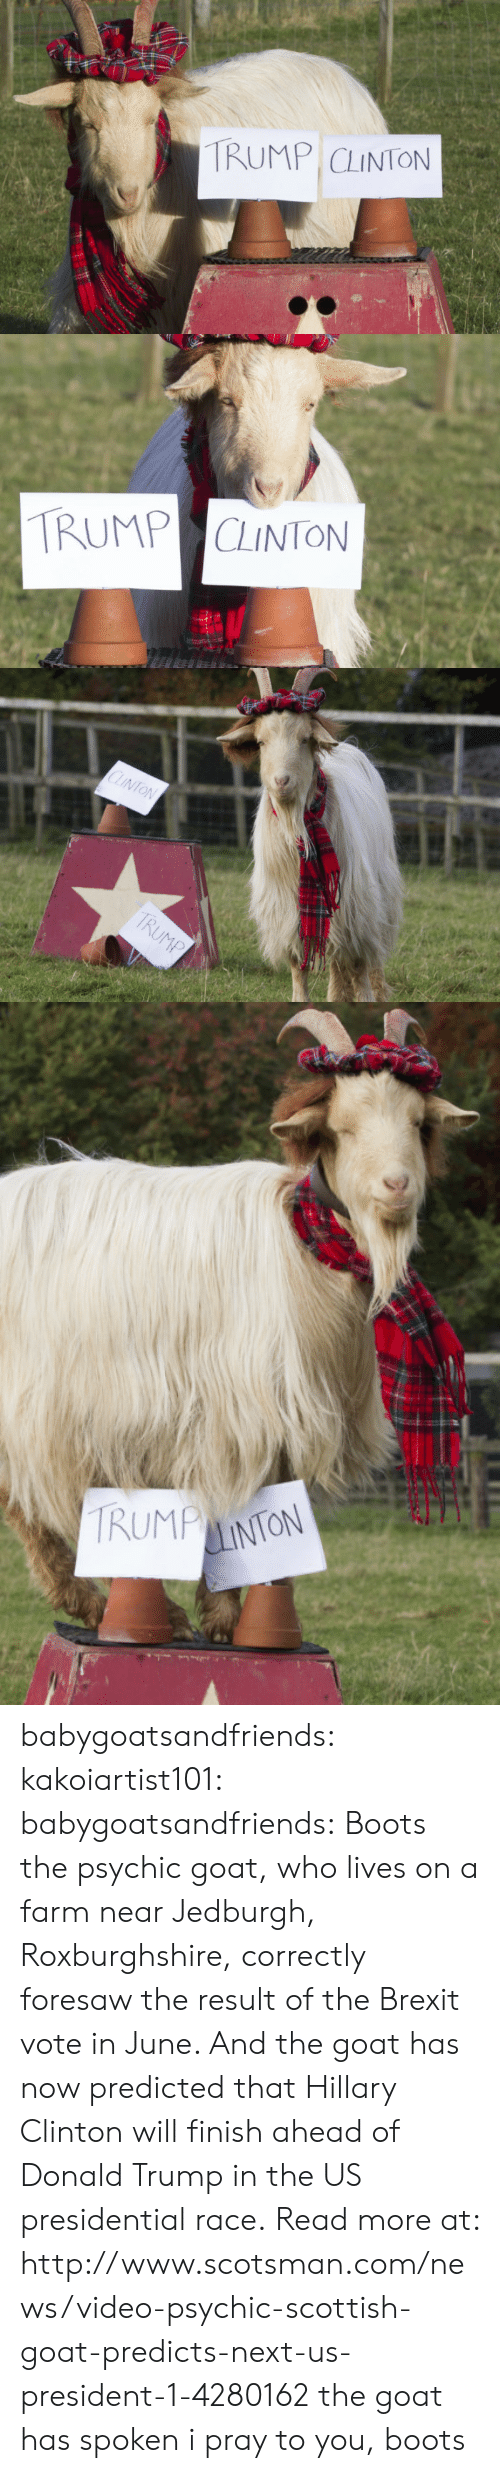 Trump Clinton: TRUMP CLINTON   TRUMP CLINTON   CLINTON  TRUMP   TRUMP  LINTON babygoatsandfriends:  kakoiartist101:  babygoatsandfriends:    Boots the psychic goat, who lives on a farm near Jedburgh, Roxburghshire, correctly foresaw the result of the Brexit vote in June. And the goat has now predicted that Hillary Clinton will finish ahead of Donald Trump in the US presidential race.Read more at: http://www.scotsman.com/news/video-psychic-scottish-goat-predicts-next-us-president-1-4280162    the goat has spoken  i pray to you, boots